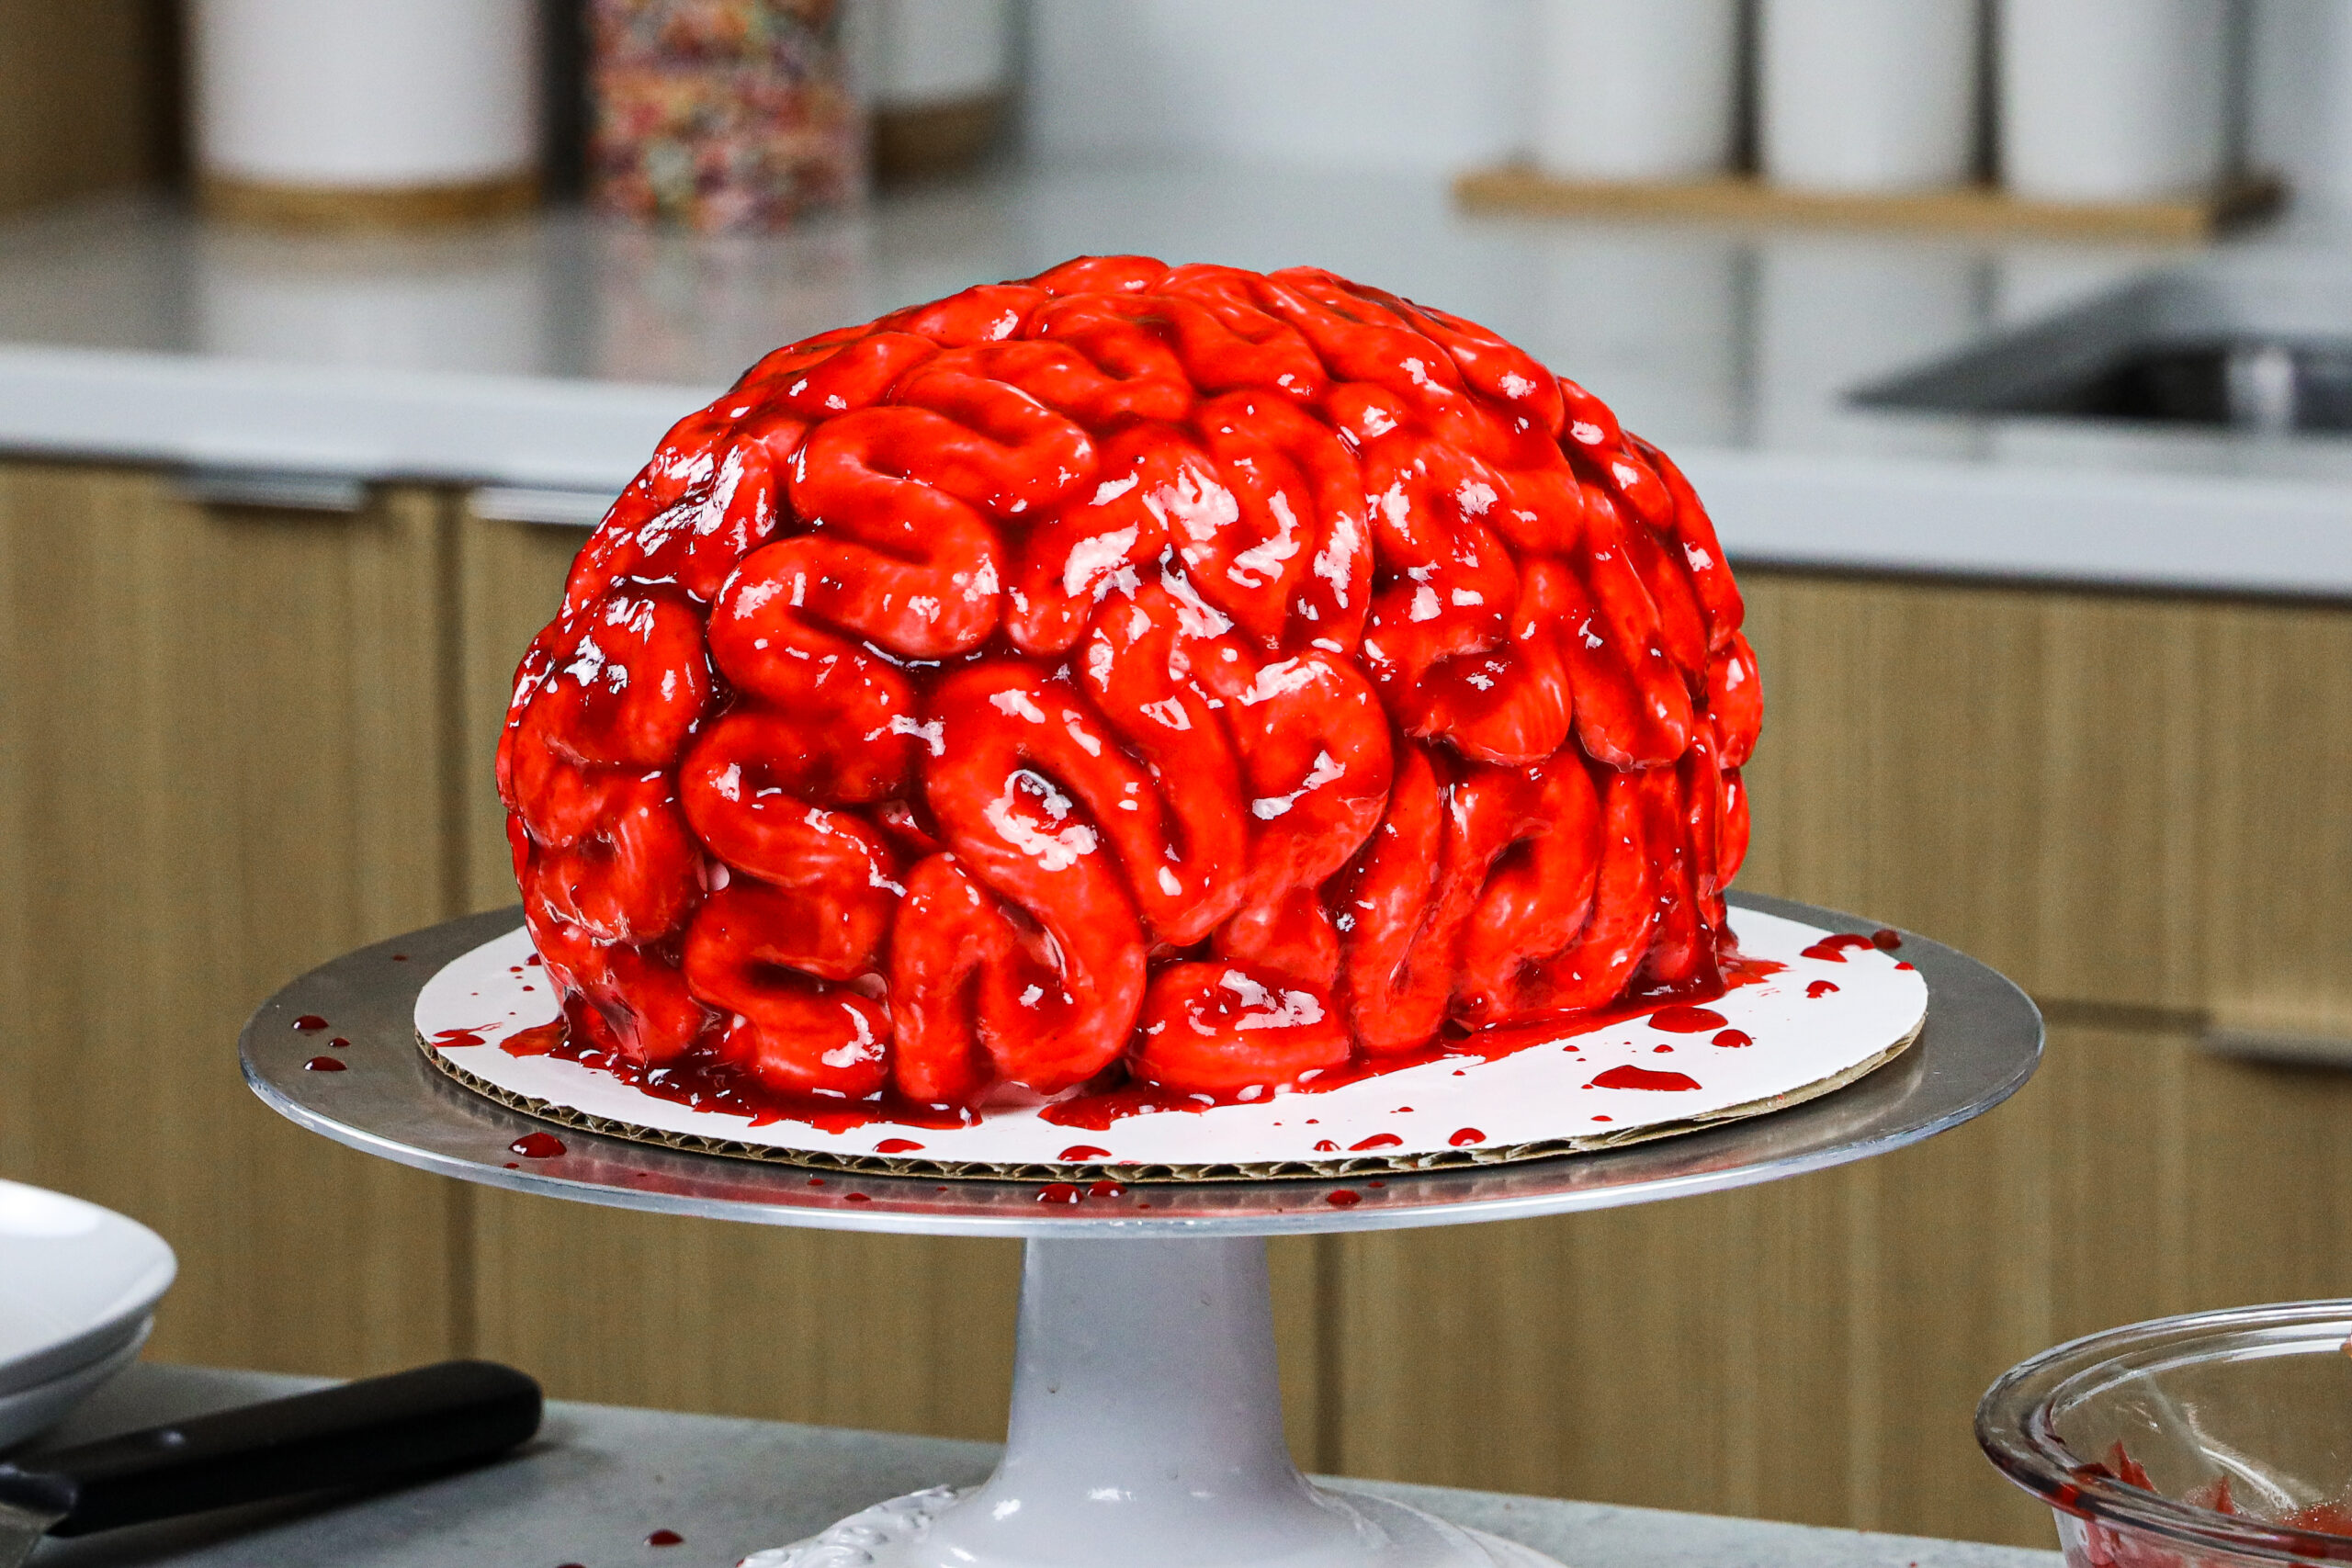 image of a bloody brain cake made for halloween with red velvet cake layers and raspberry jam blood